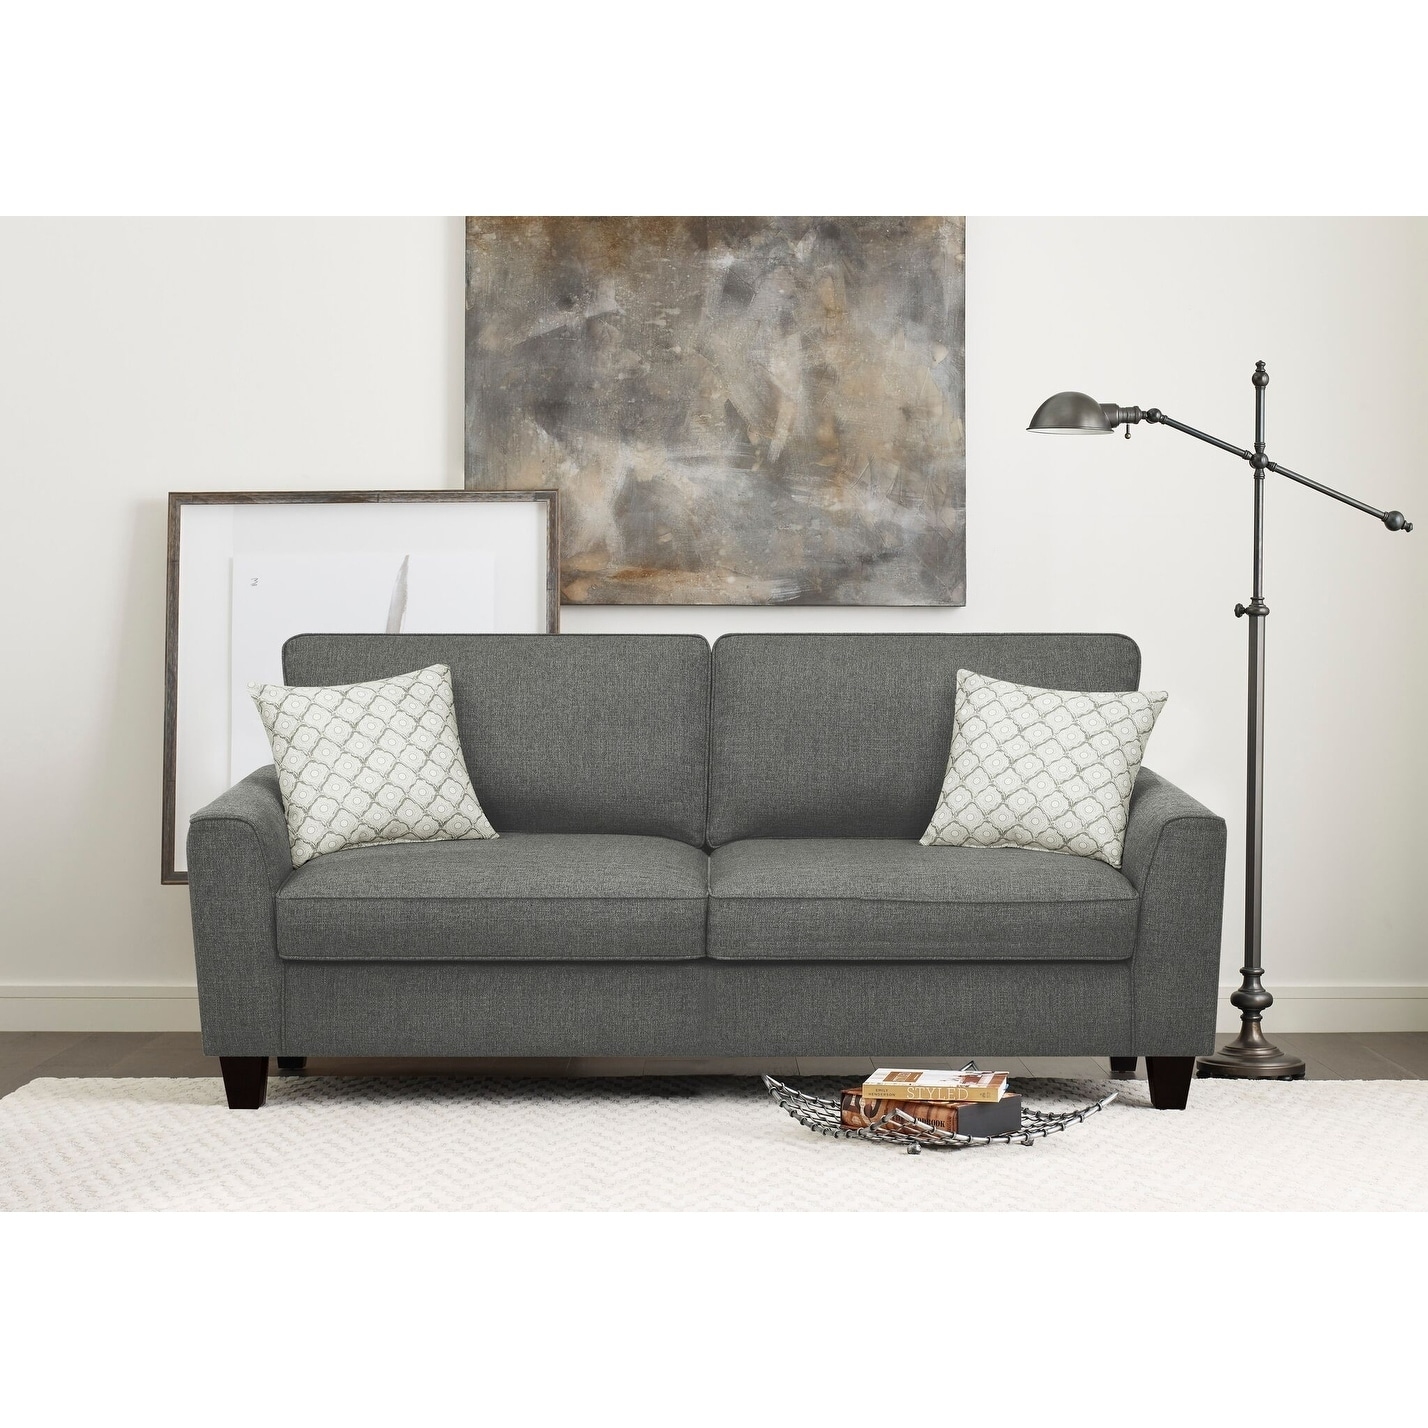 Shop Serta Astoria Deep Seating 78 Inch Sofa Free Shipping Today